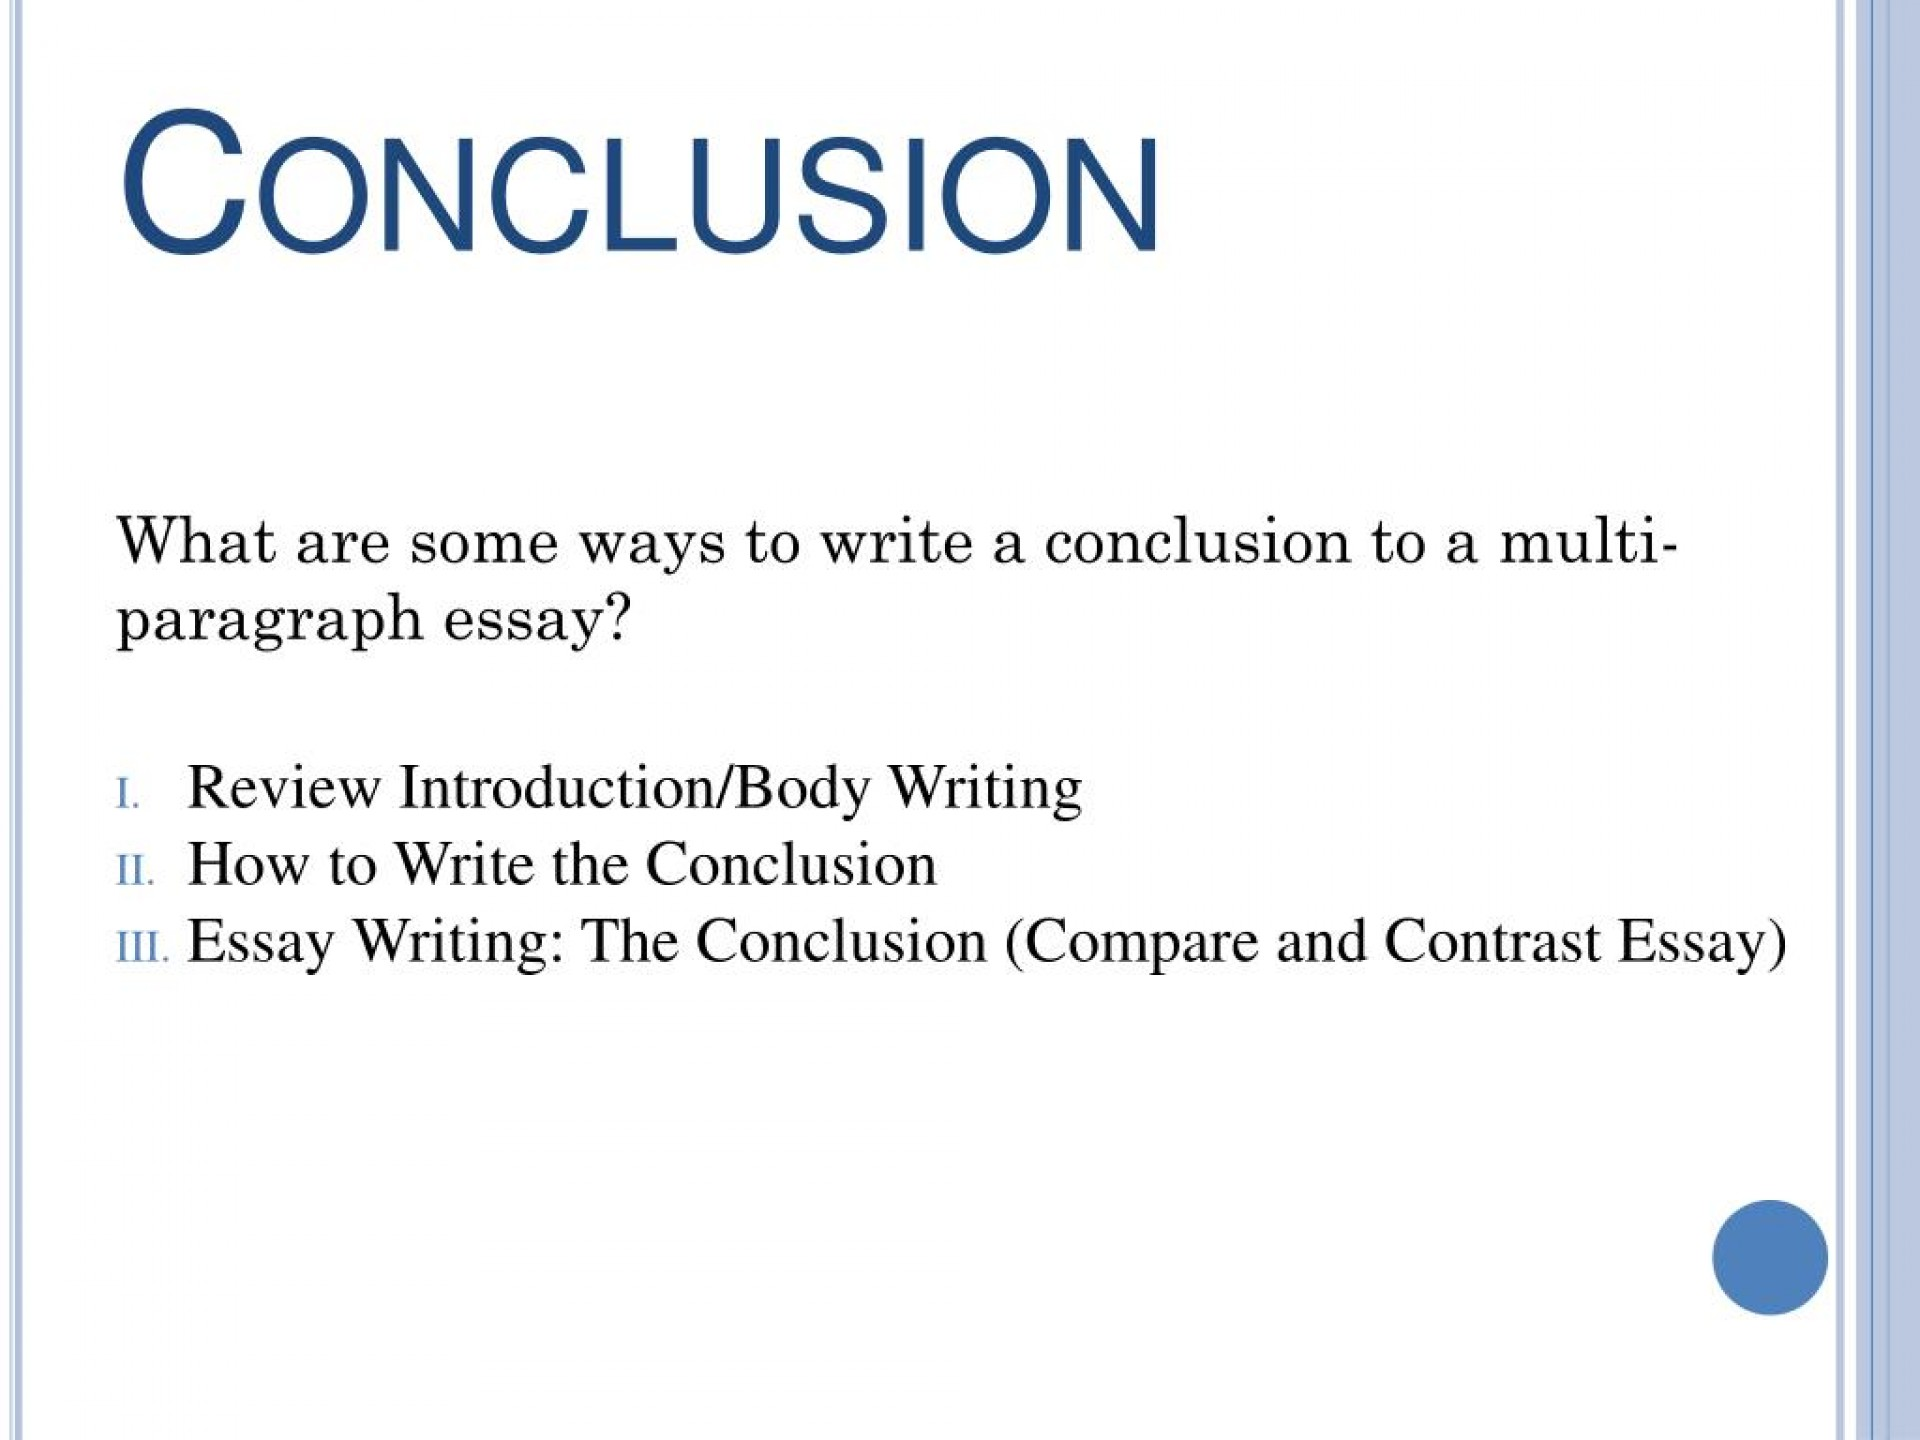 017 Essay Example Conclusion Of An Surprising About Racism Paragraph Outline Sample 1920